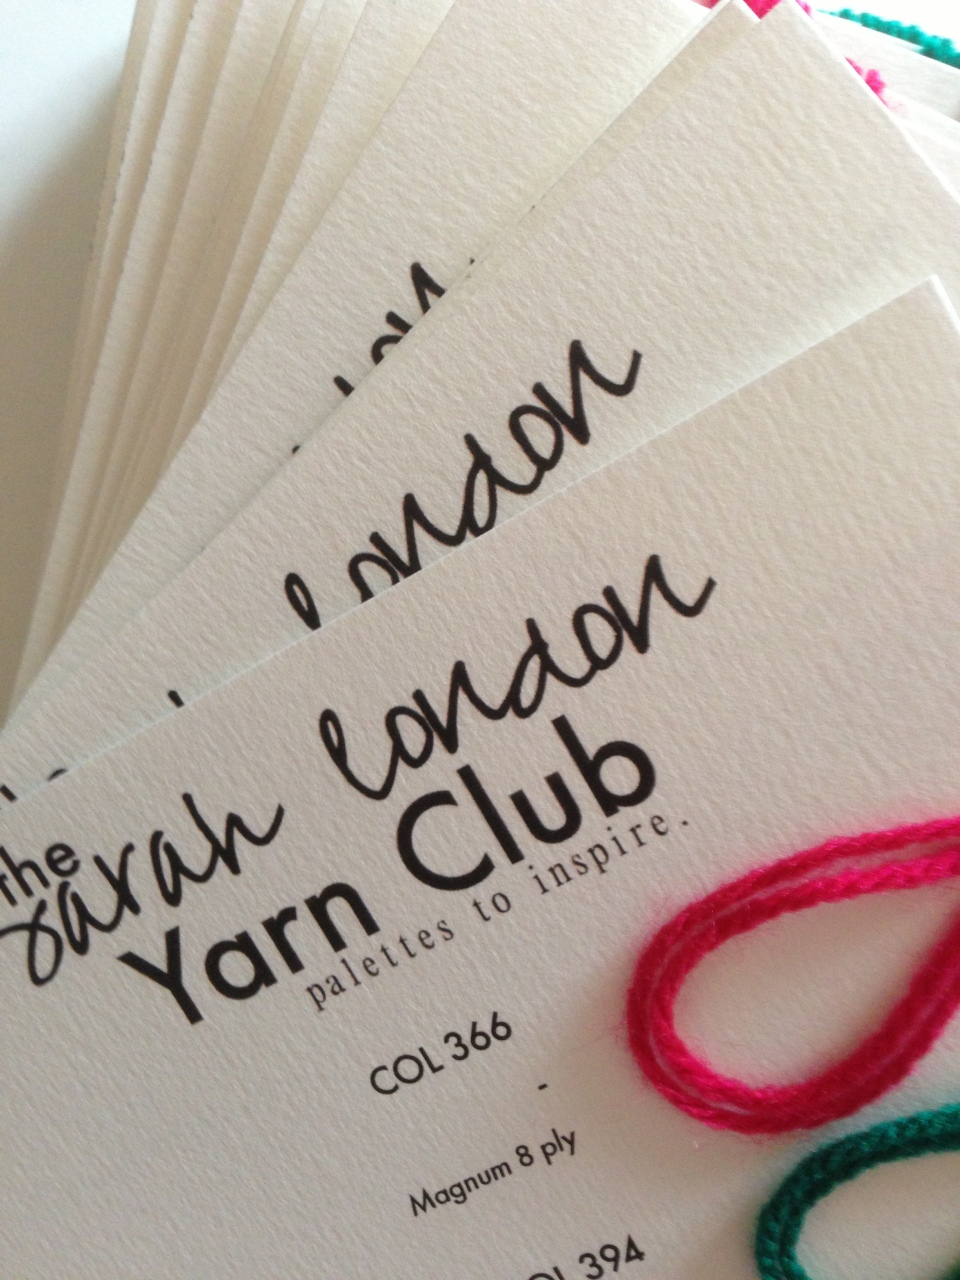 Yarn Club | Sarah London | November 2013